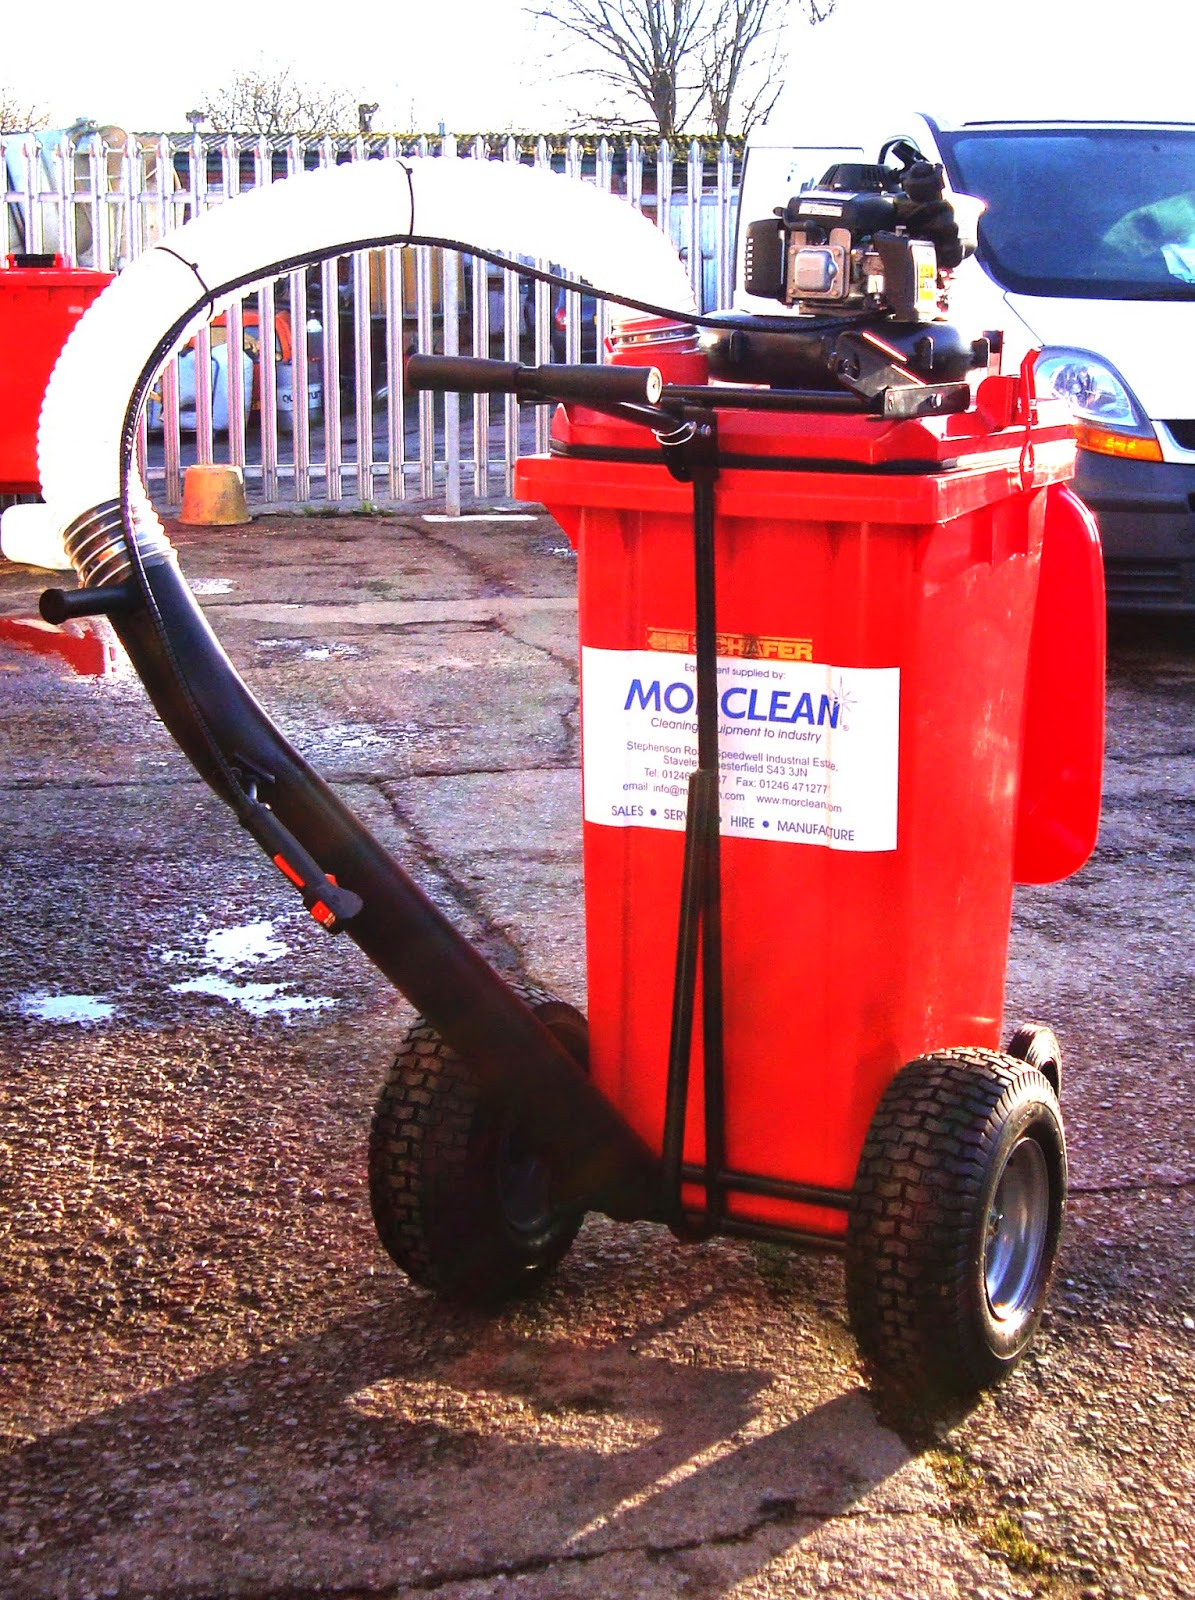 trolley vac litter collecting vacuum cleaner outdoor use morclean